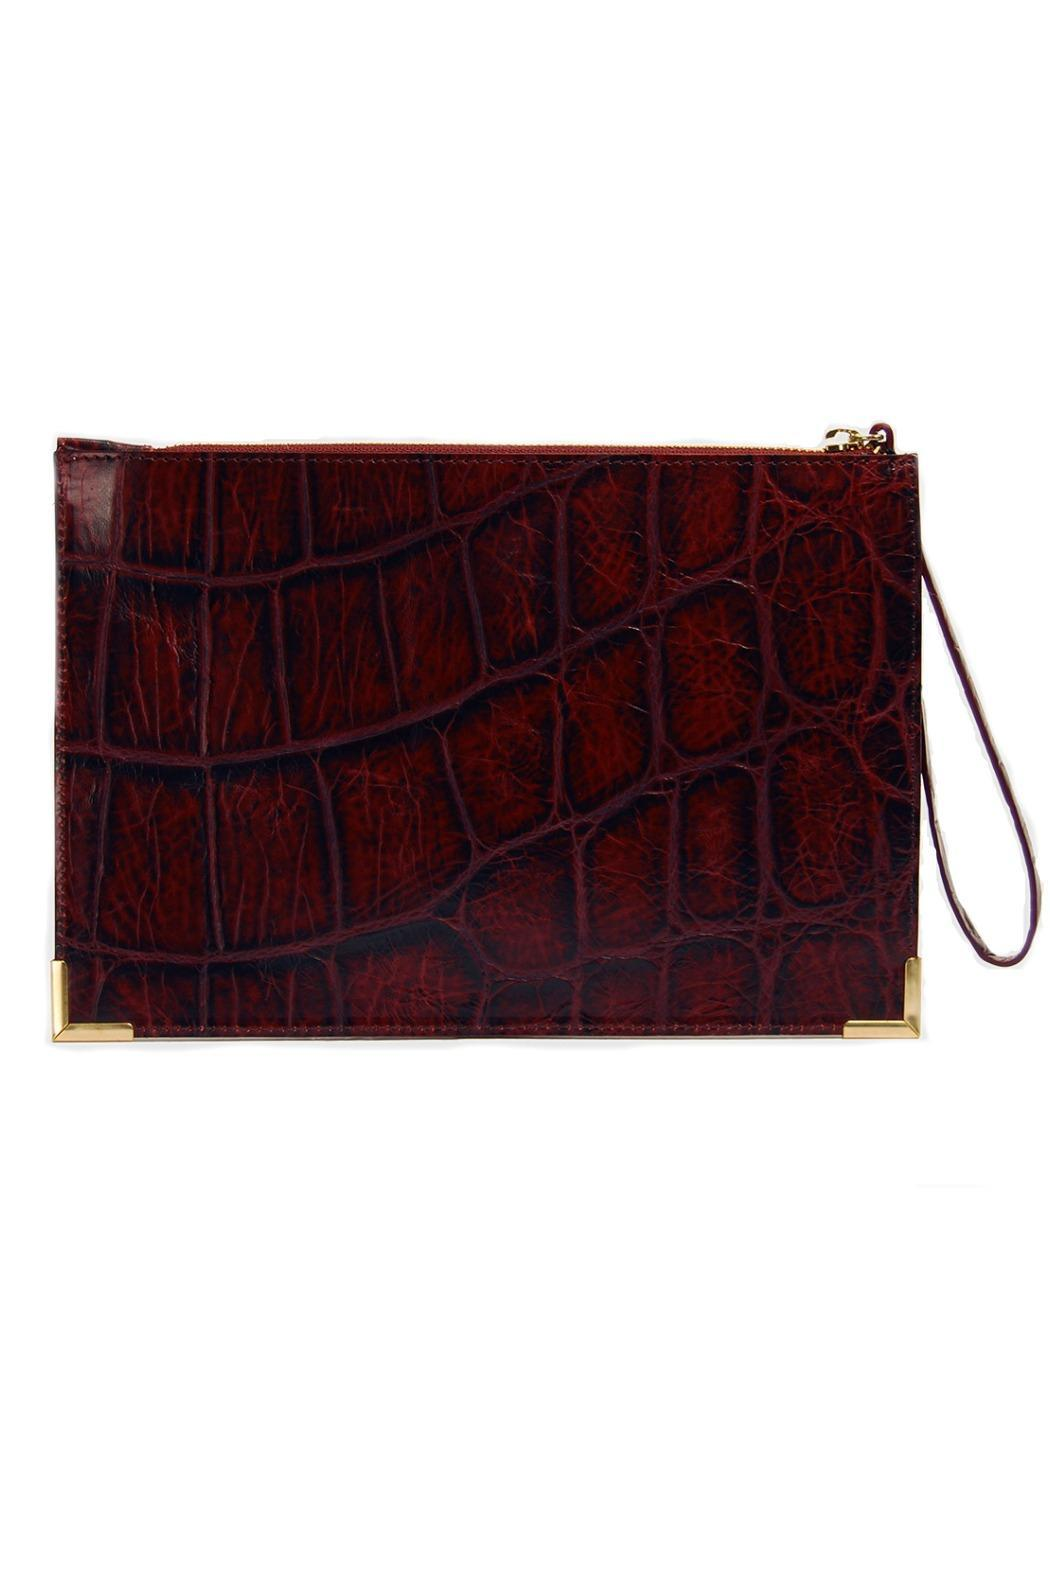 My Choice Bordeaux Leather Clutch - Main Image